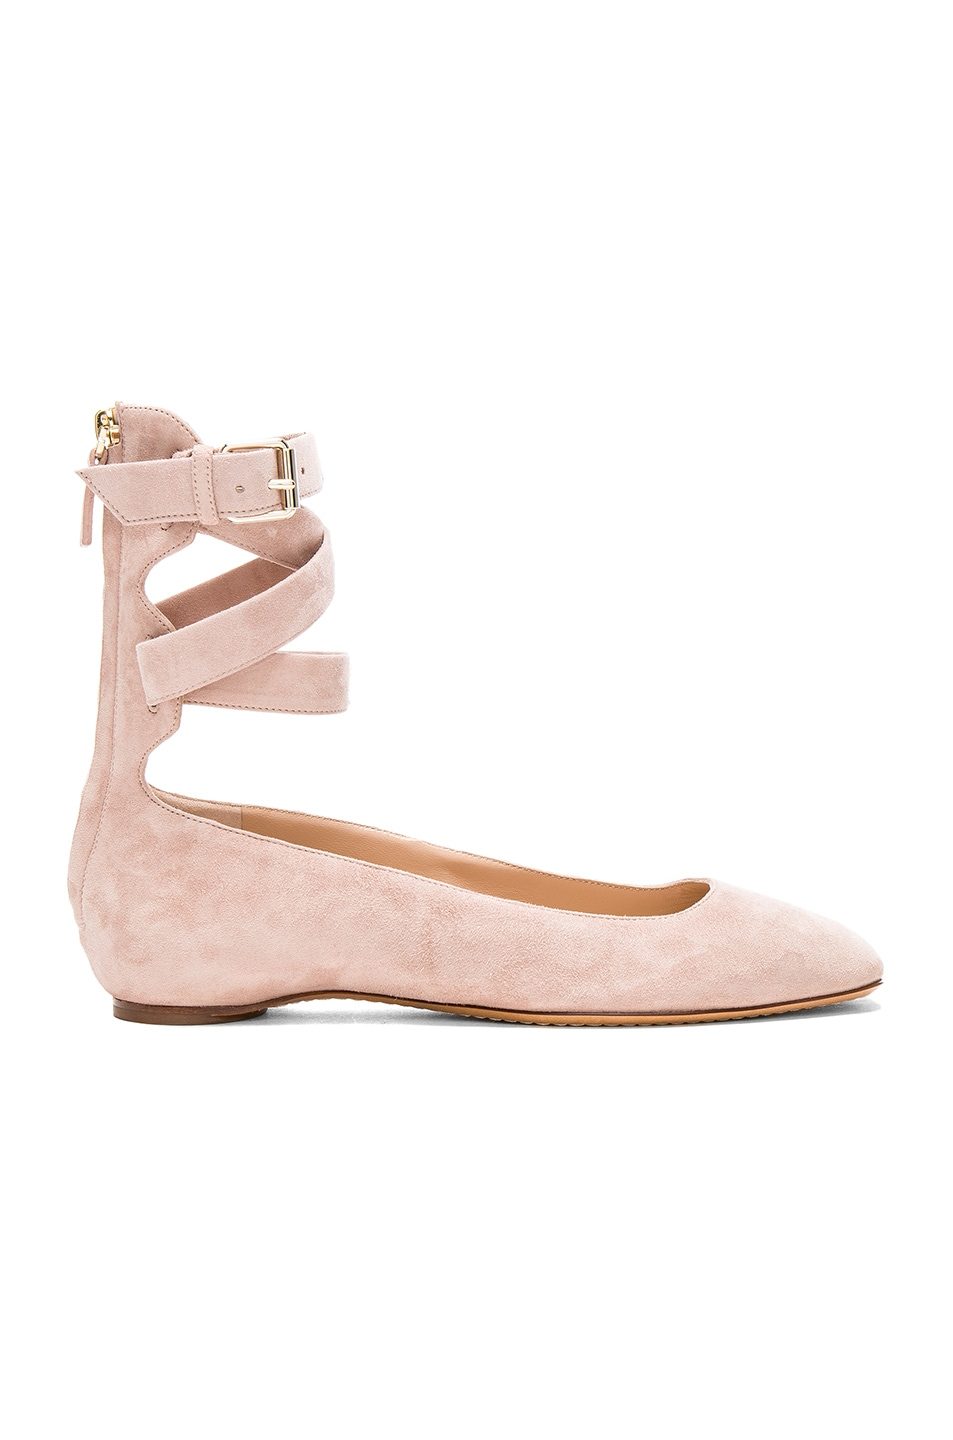 Image 1 of Valentino Suede Ankle Strap Flats in Poudre